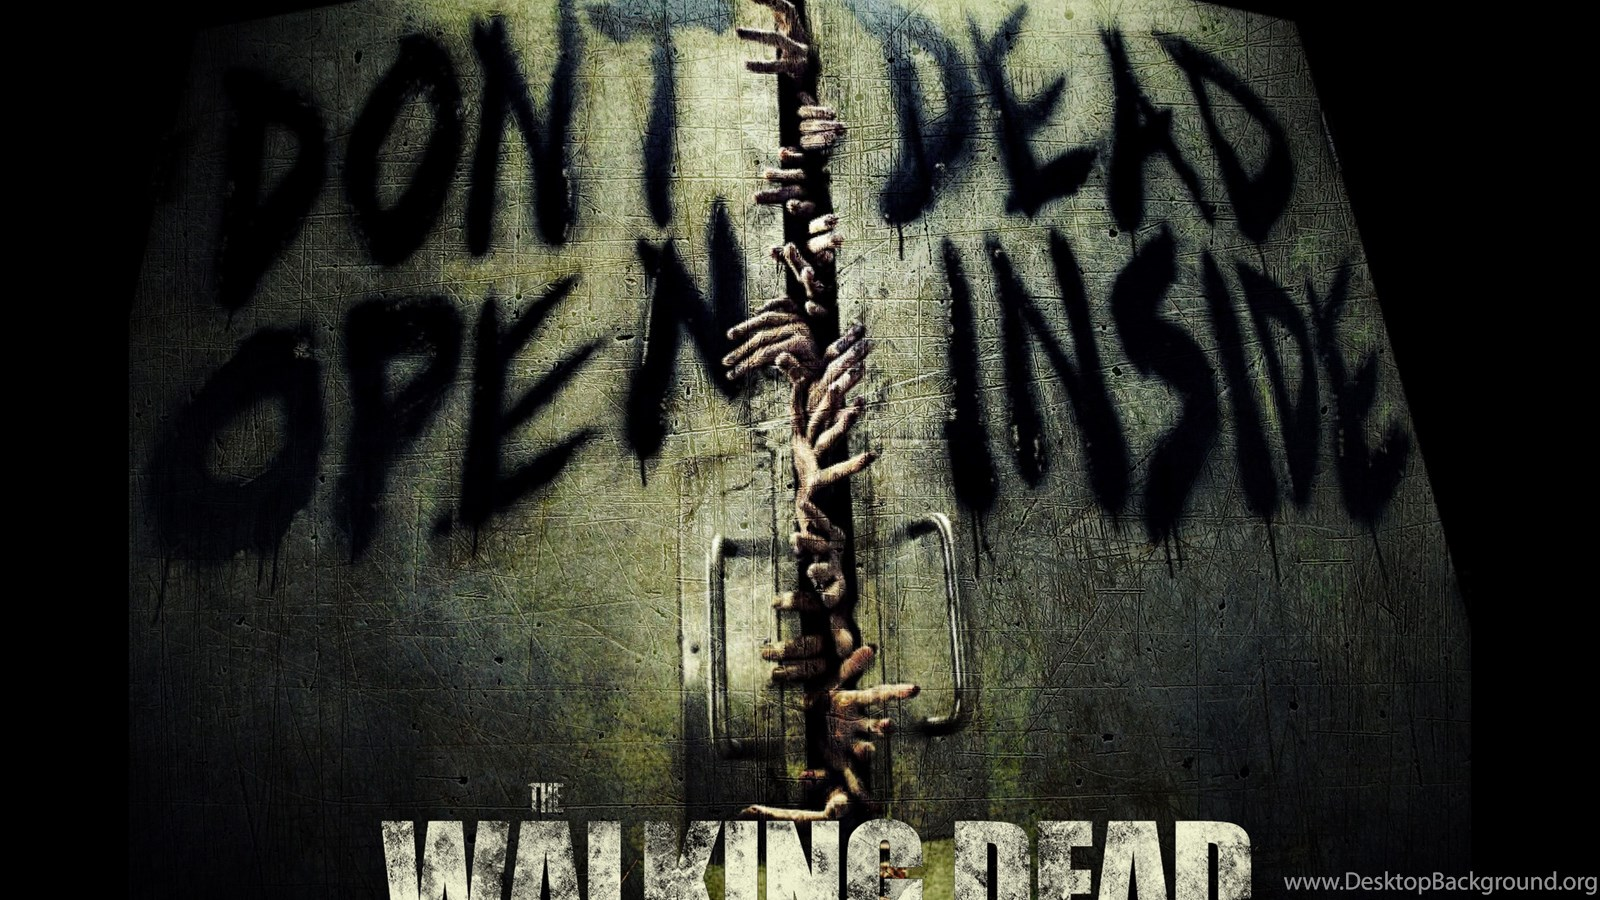 the walking dead wallpapers hd wallpaper backgrounds of